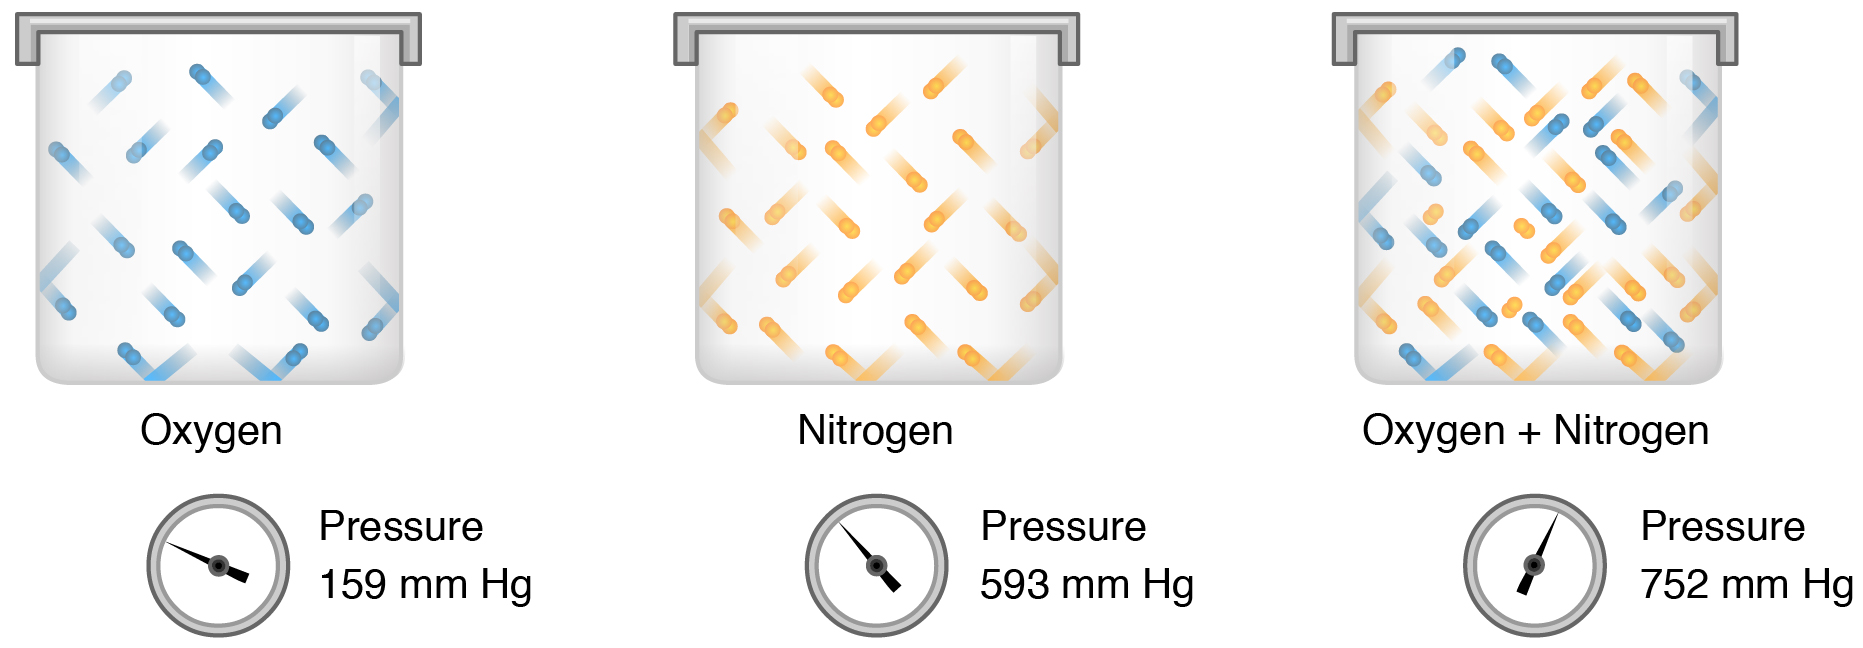 The left panel of this figure shows a canister of oxygen. The middle panel shows a canister of nitrogen. The right panel shows a canister containing a mixture of oxygen and nitrogen. A pressure gauge on each container shows the pressure exerted by the gas in that container.